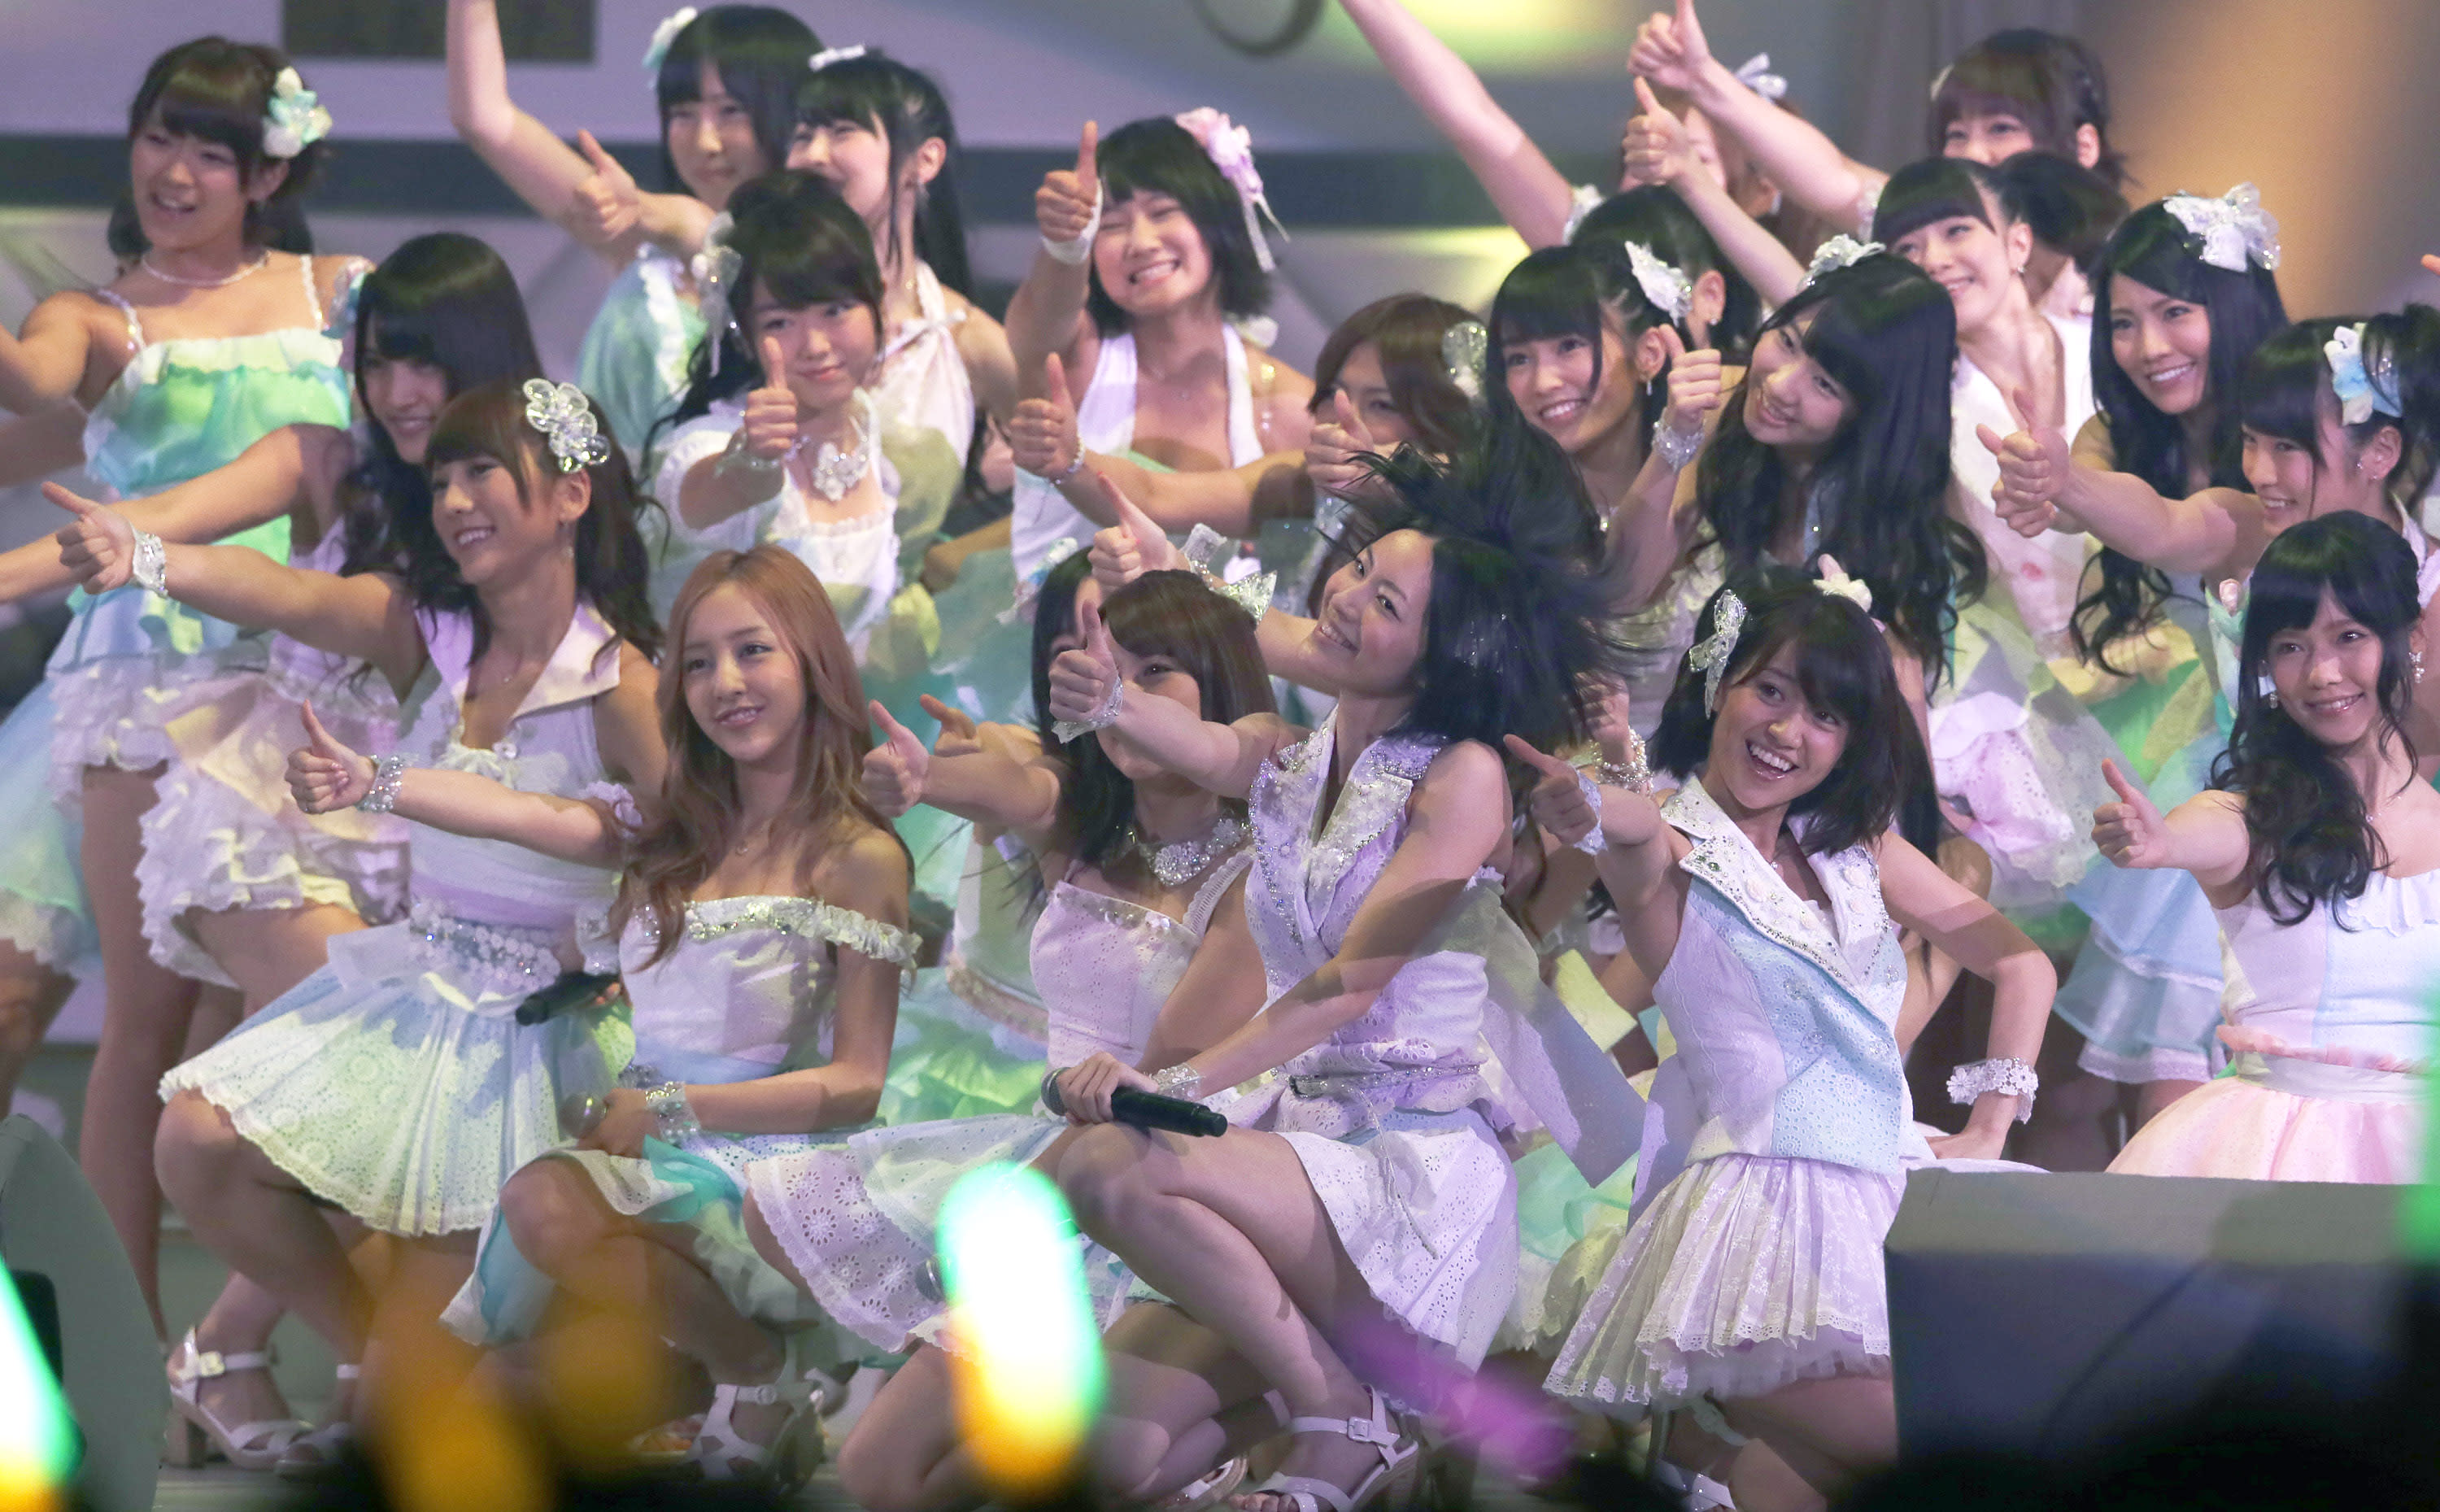 FILE - In this June 6, 2012 file photo, Japan's all-girl pop idol group AKB48 members perform during the annual AKB48 popularity poll in Tokyo. More than 60 girls and young women, split into four teams, make up what is arguably Japan's most popular pop group. It performs almost every day, has spawned affiliate groups across the country and has recently given rise to sister mega-groups in China and Indonesia. (AP Photo/Shizuo Kambayashi, File)